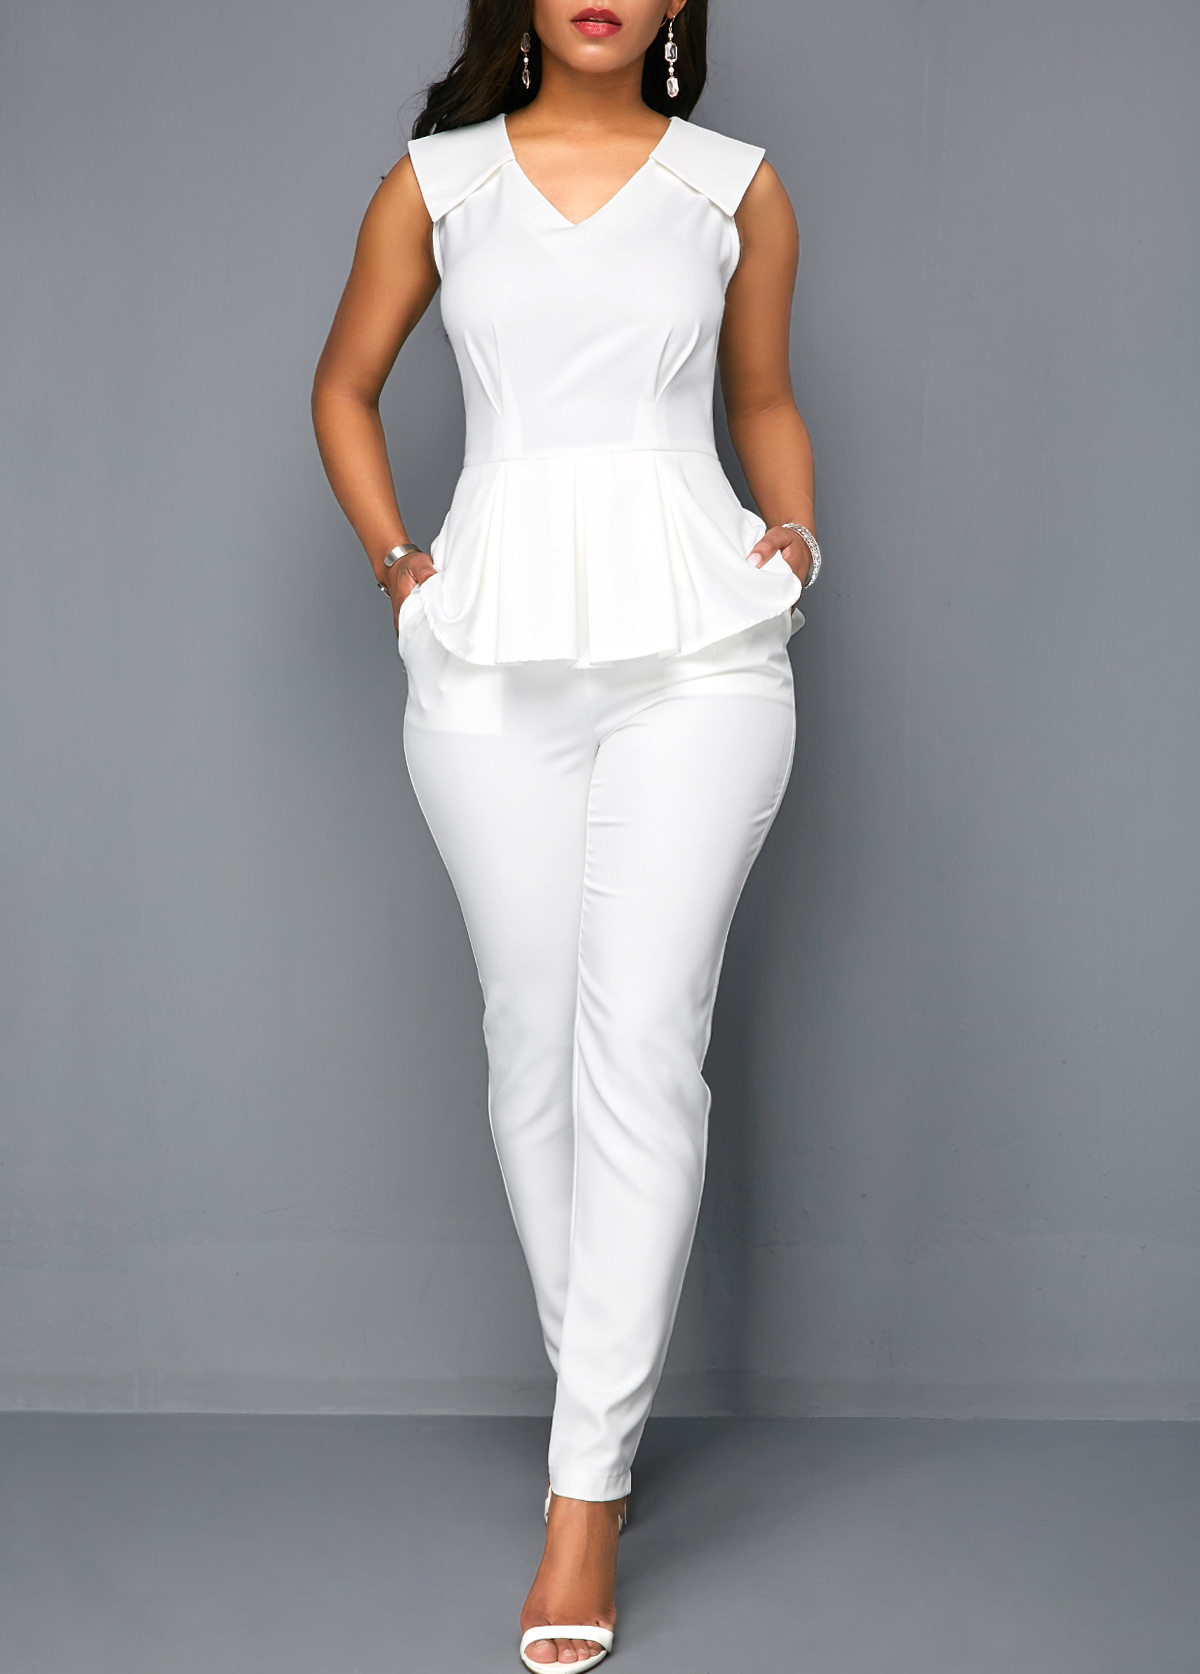 V Neck Peplum Sleeveless White Jumpsuit